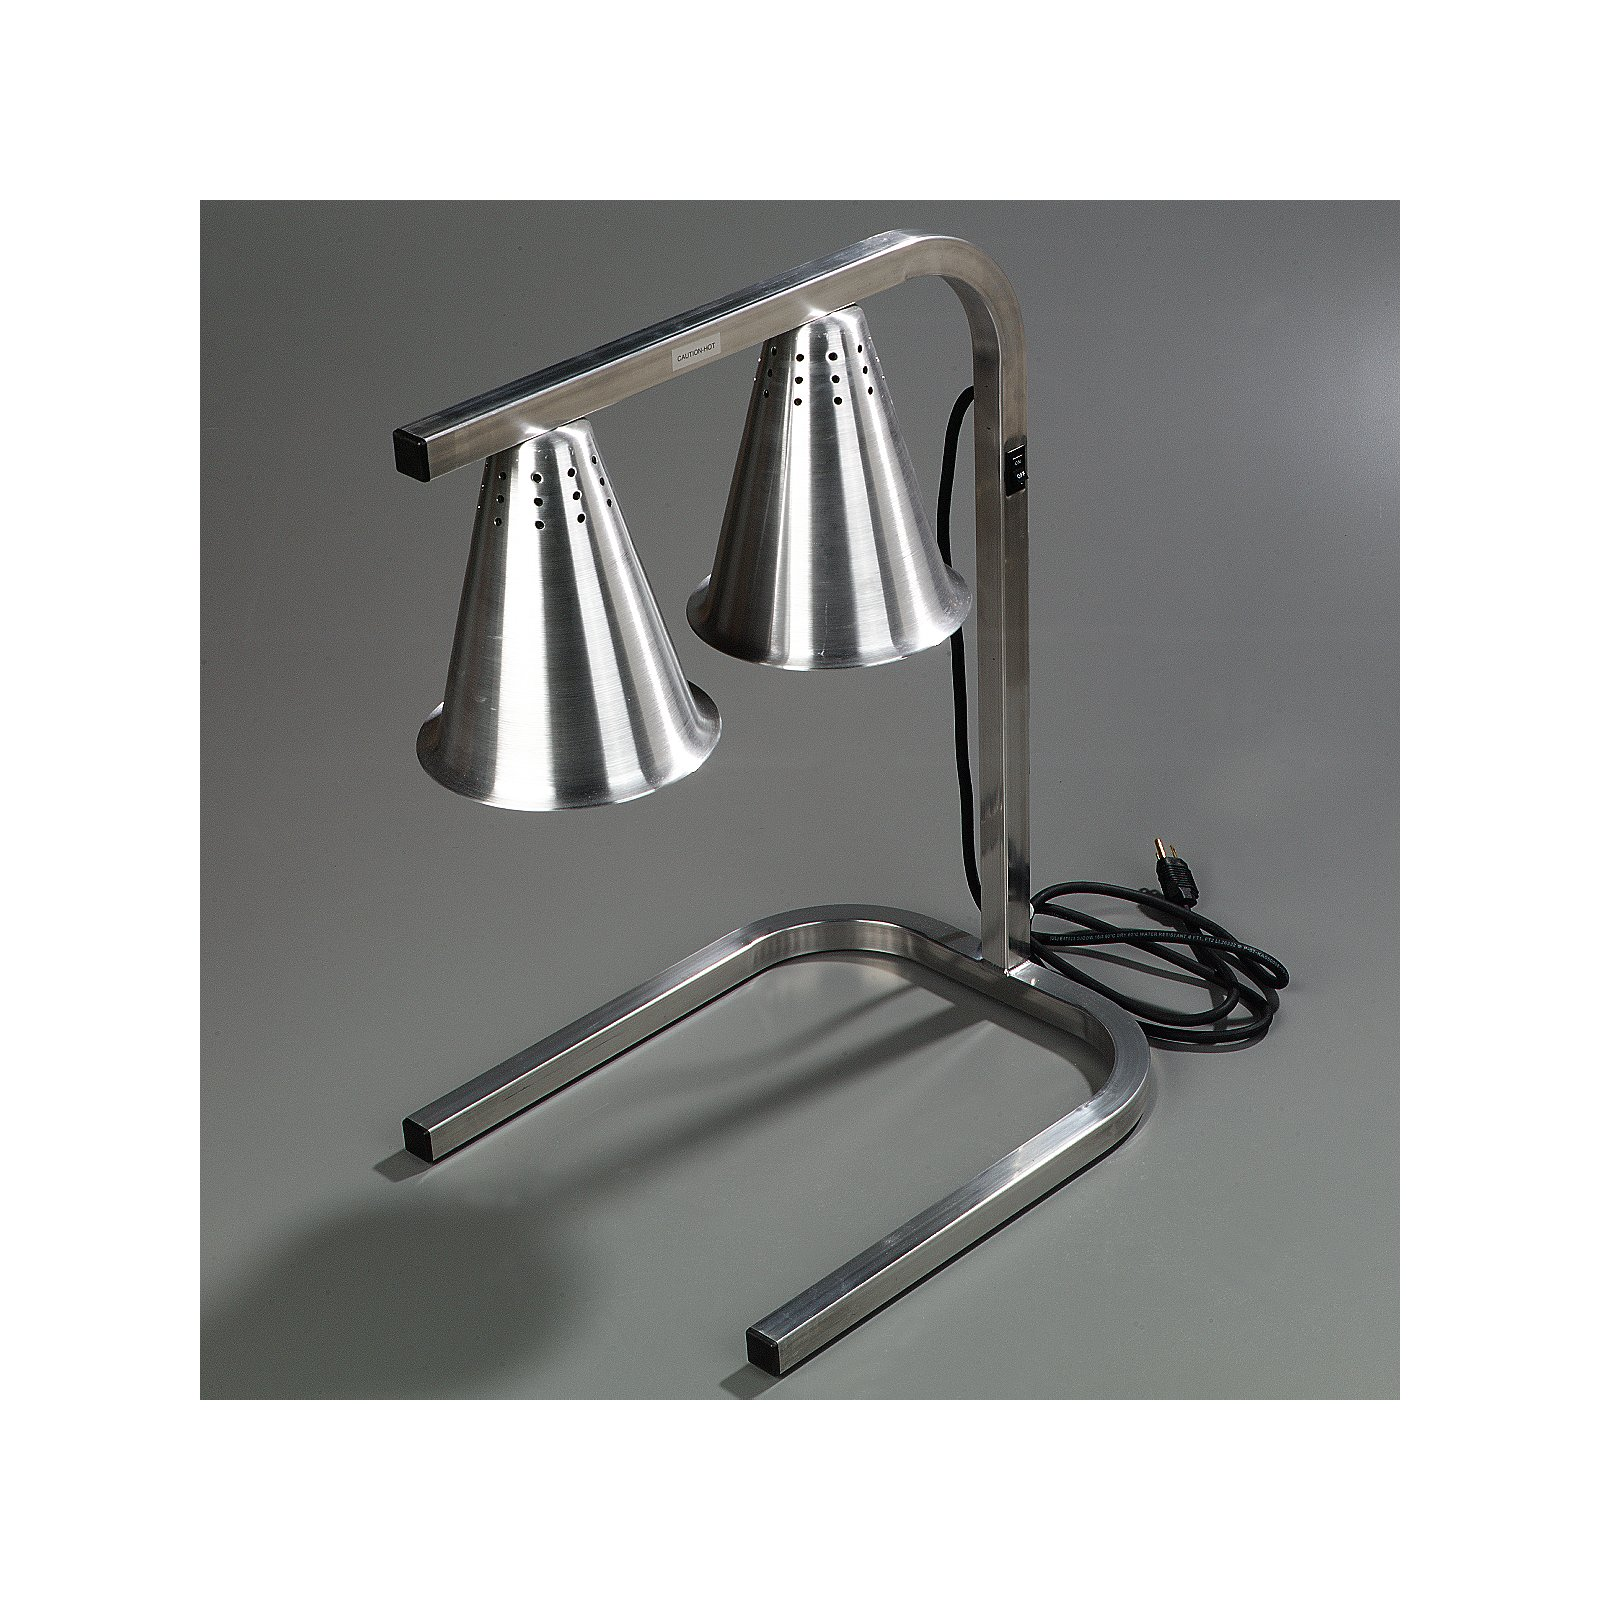 Hl723700 Two Bulb Free Standing Adjustable Heat Lamp Aluminum Carlisle Foodservice Products